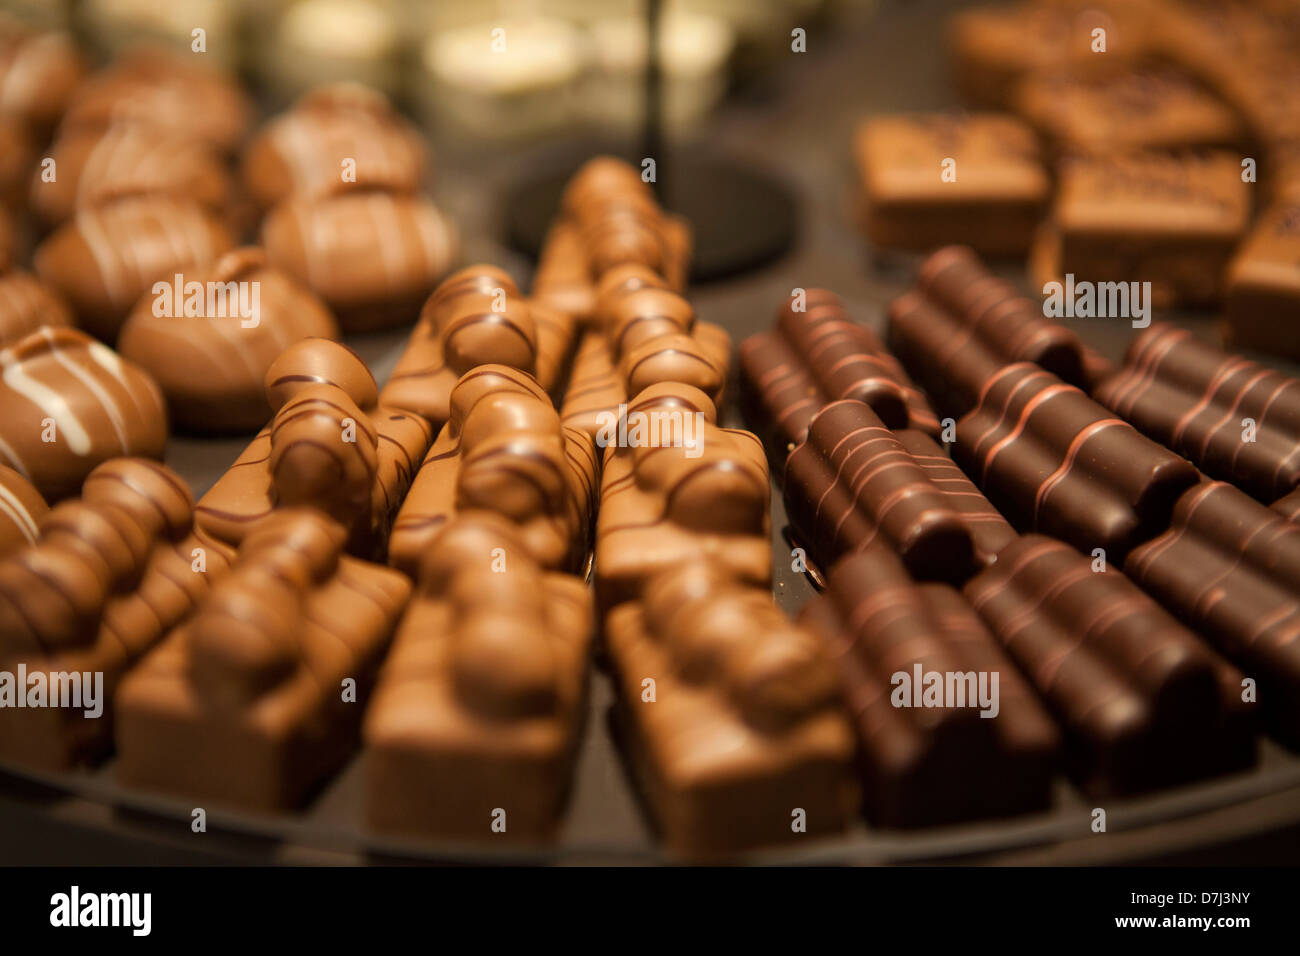 bakery in Holland - Stock Image